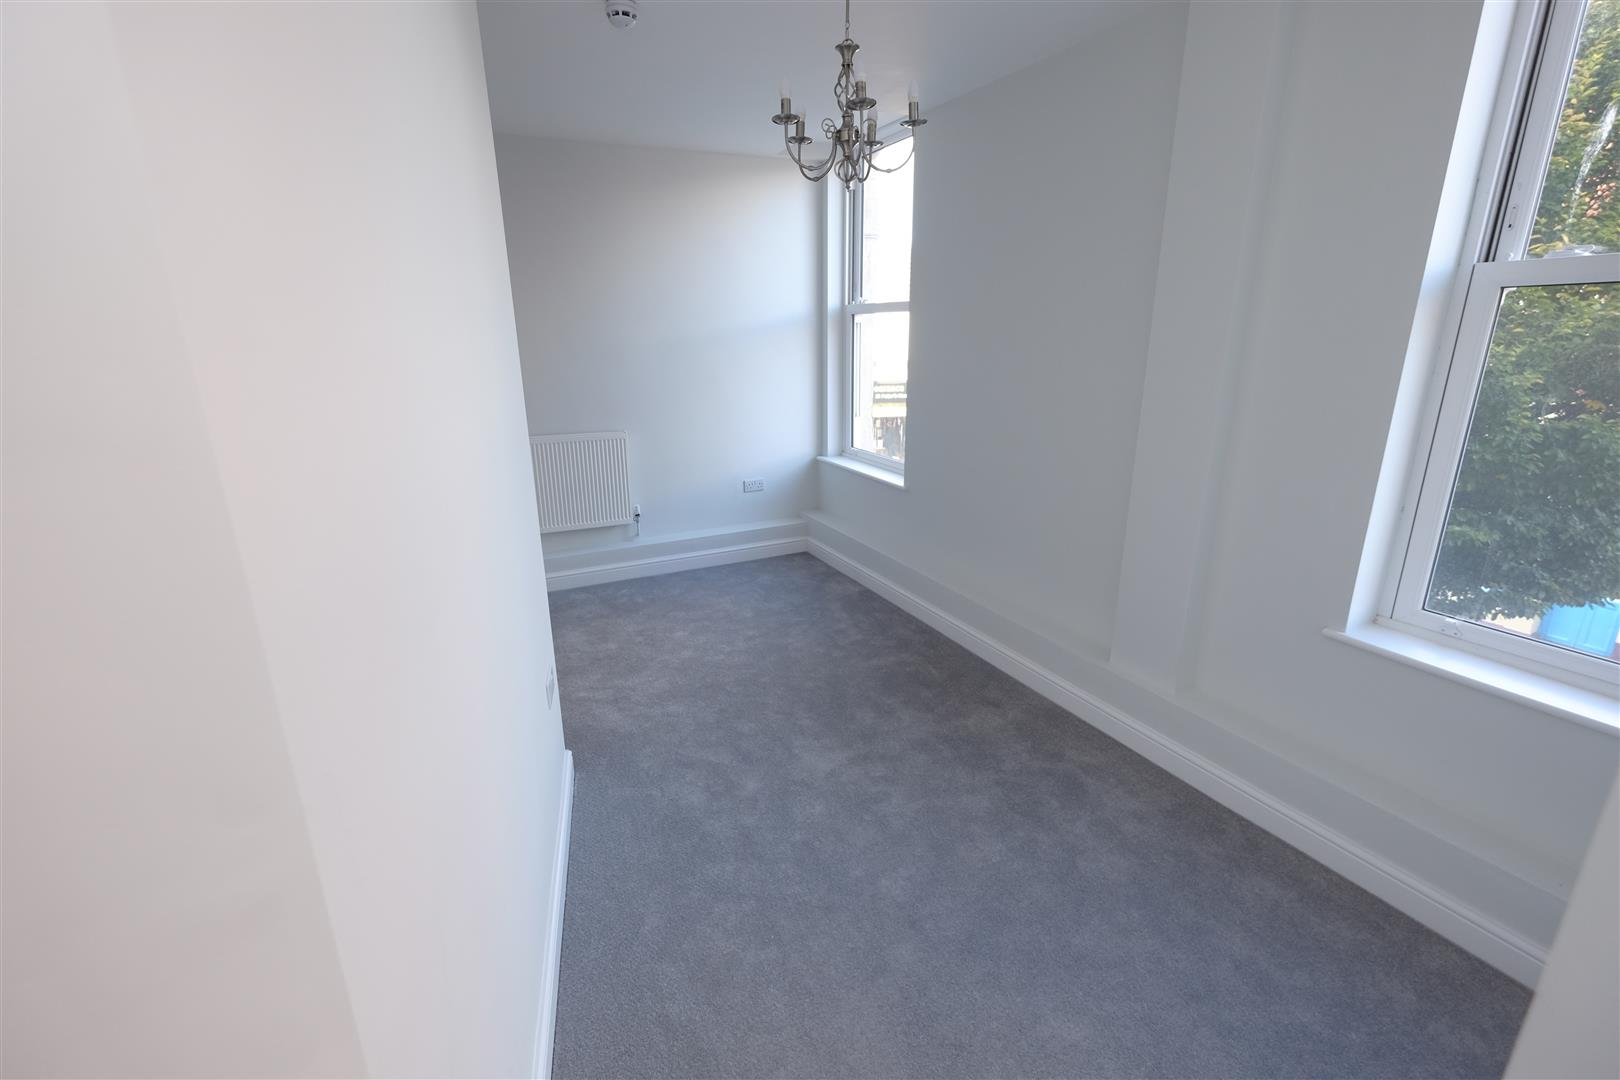 Images for RENOVATED 3 BED FLAT - BS3 EAID:hollismoapi BID:11